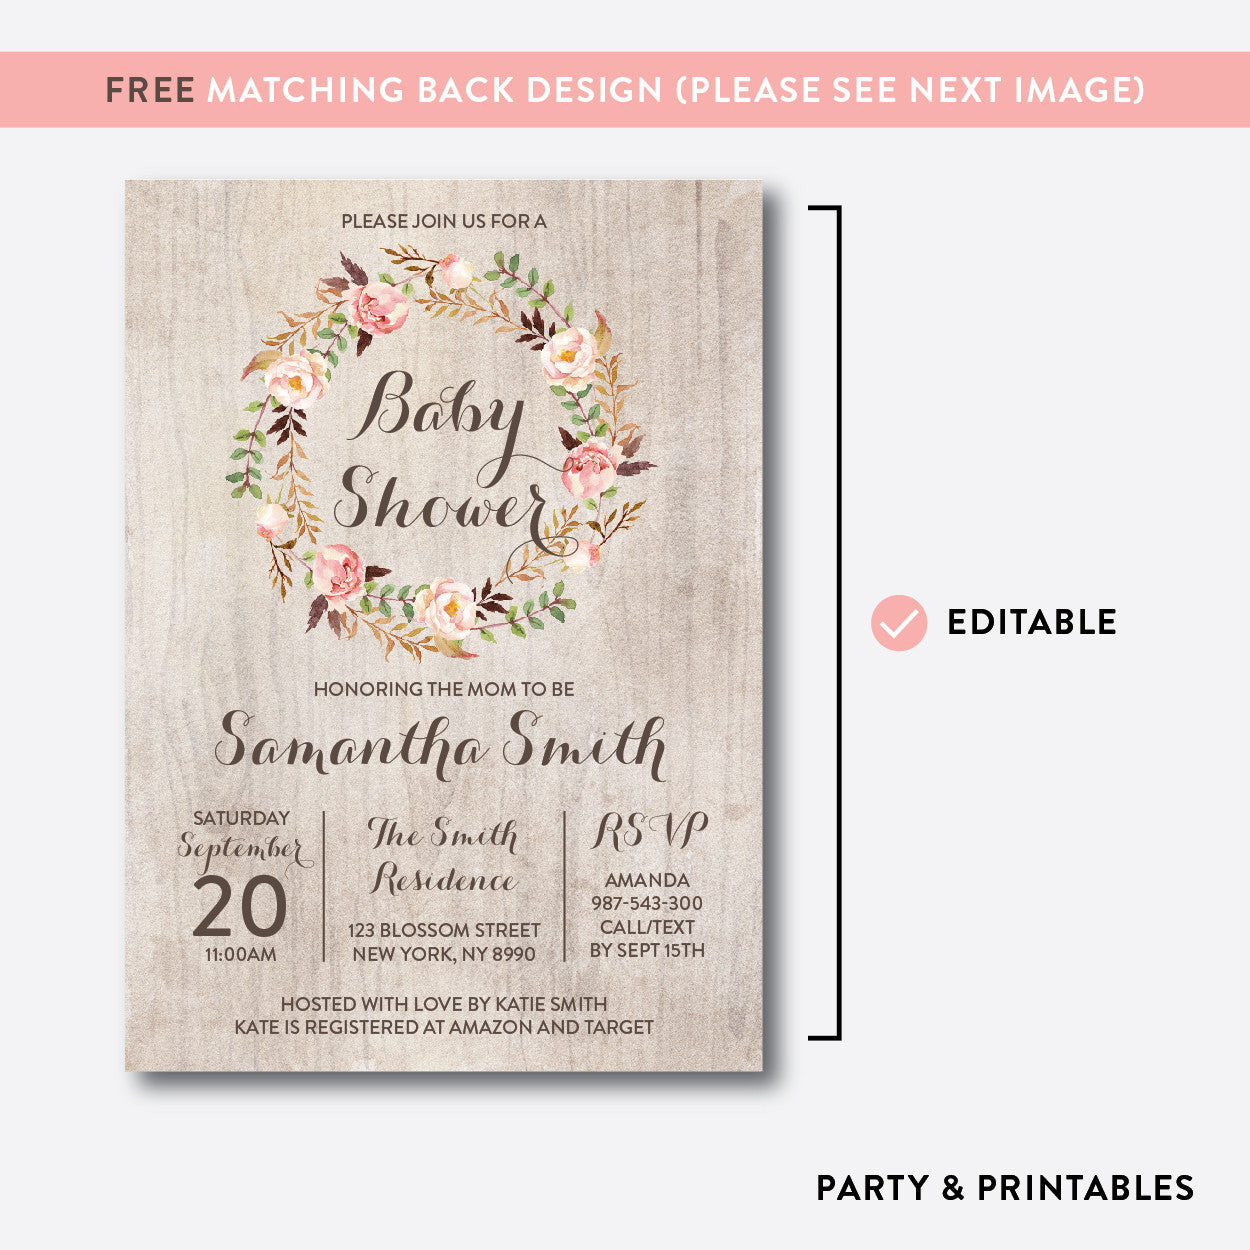 Floral Wreath Baby Shower Invitation / Editable / Instant Download (FBS.06), invitation - Party and Printables